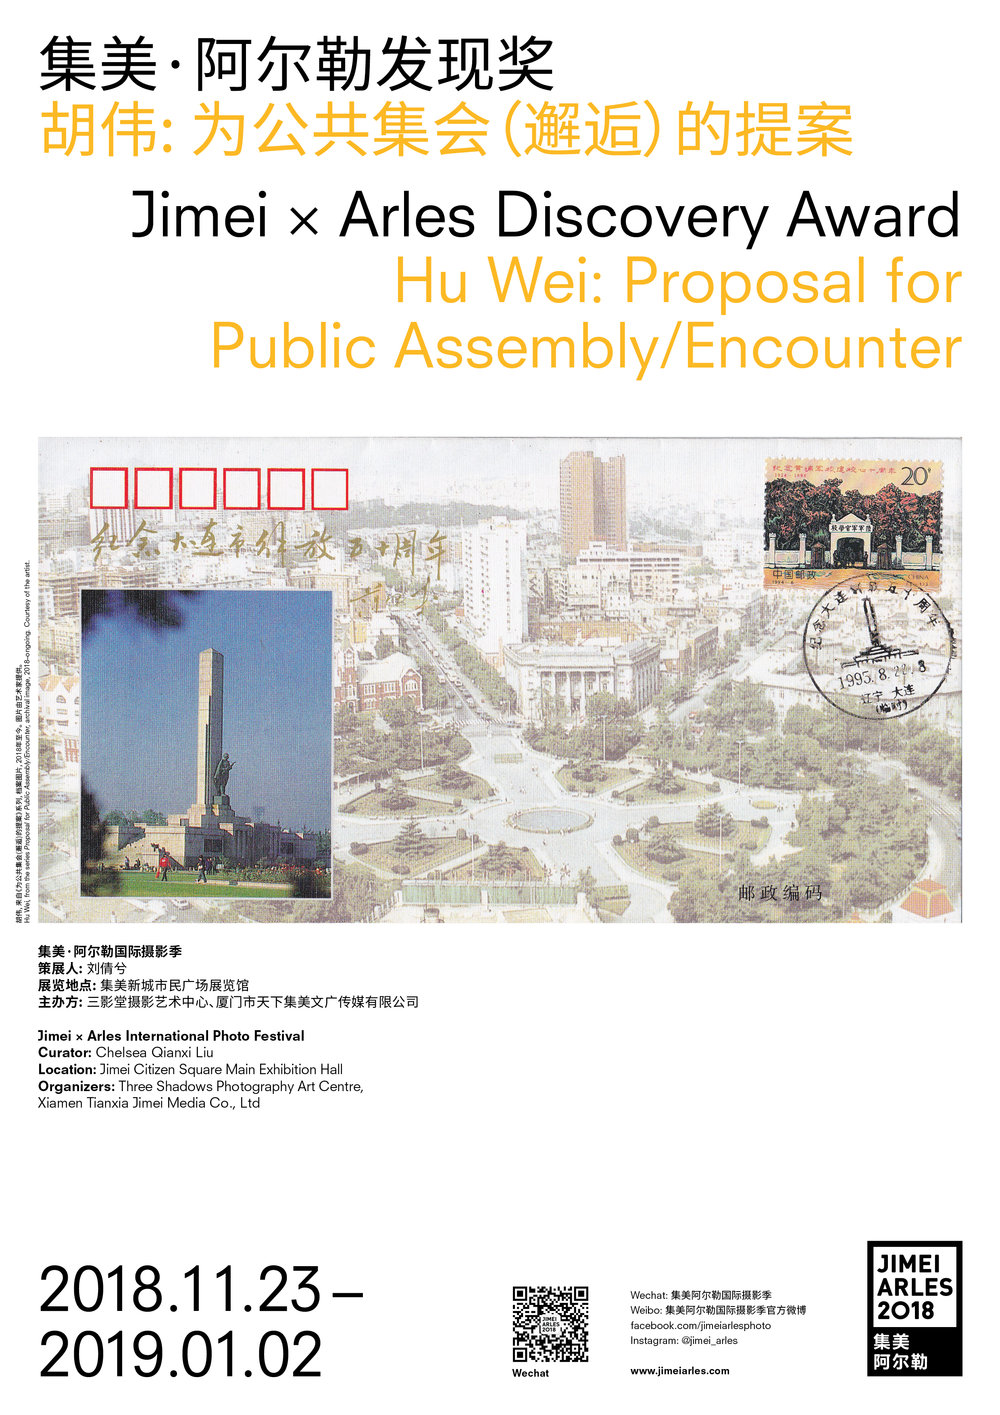 JIMEIARLES_exhibition poster_Digital_Hu_Wei.jpg